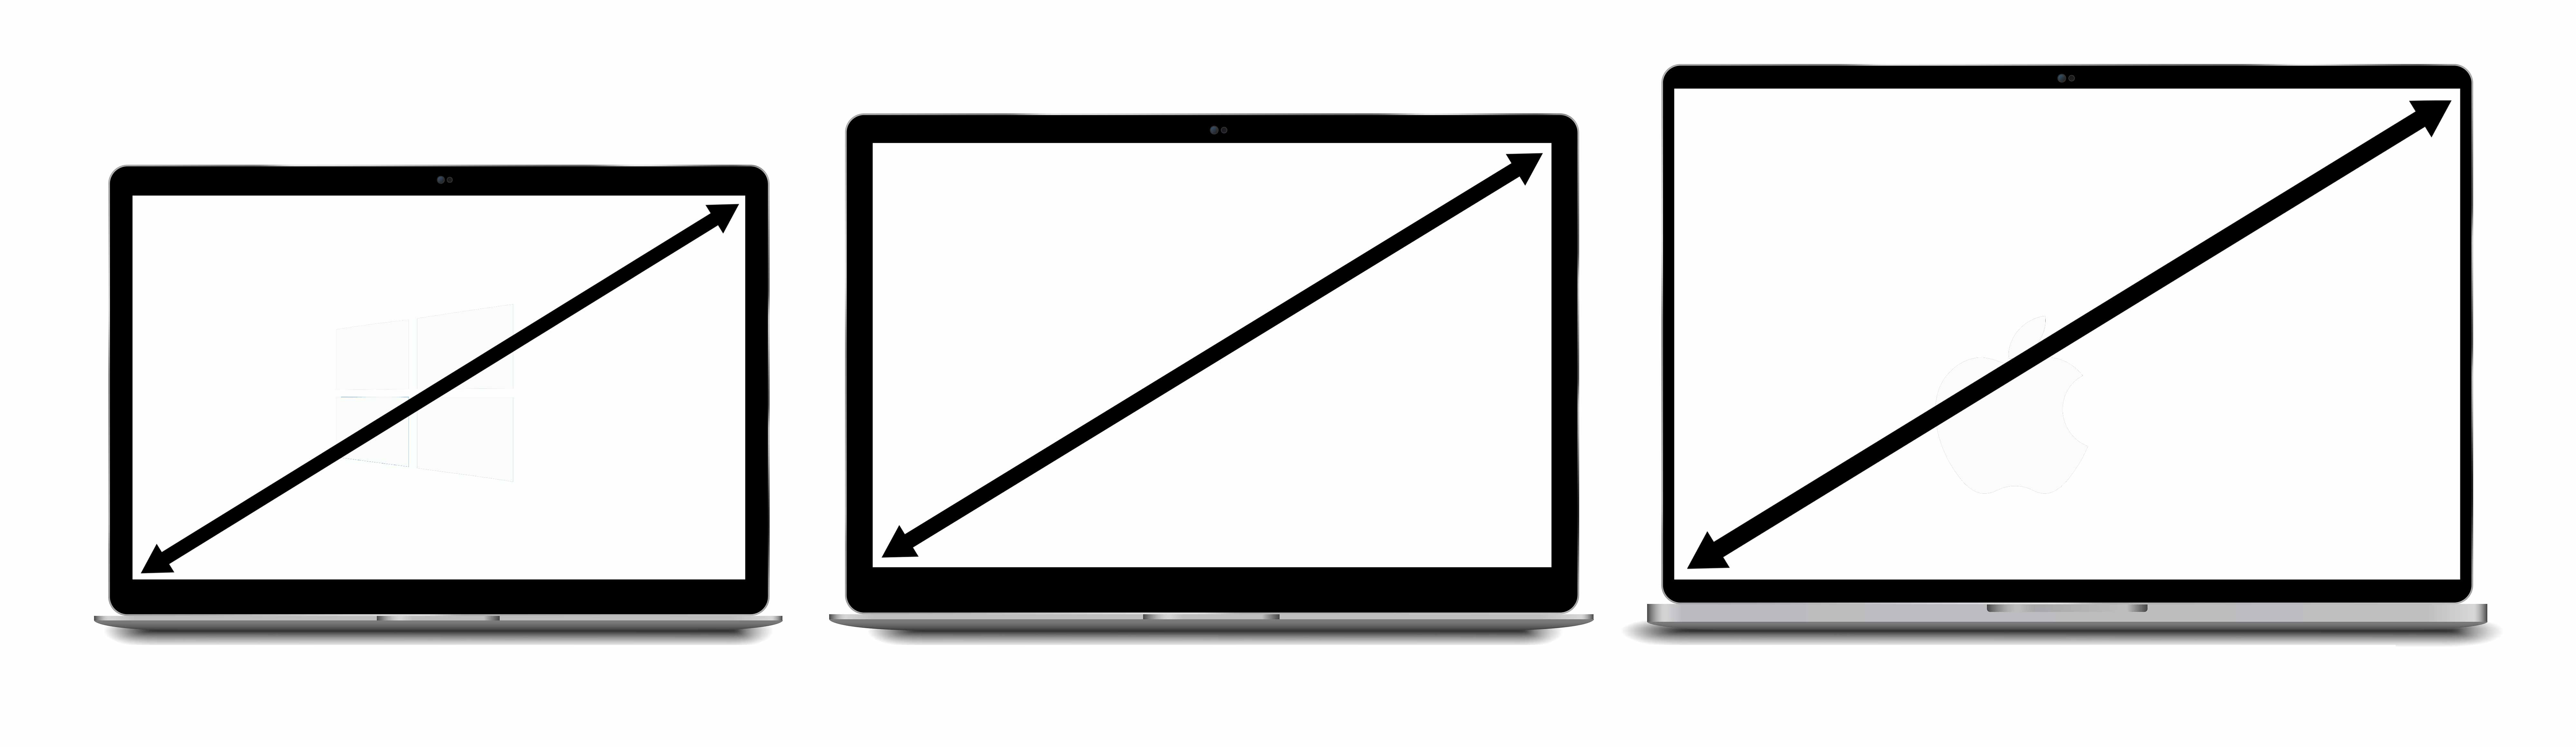 size of the laptop